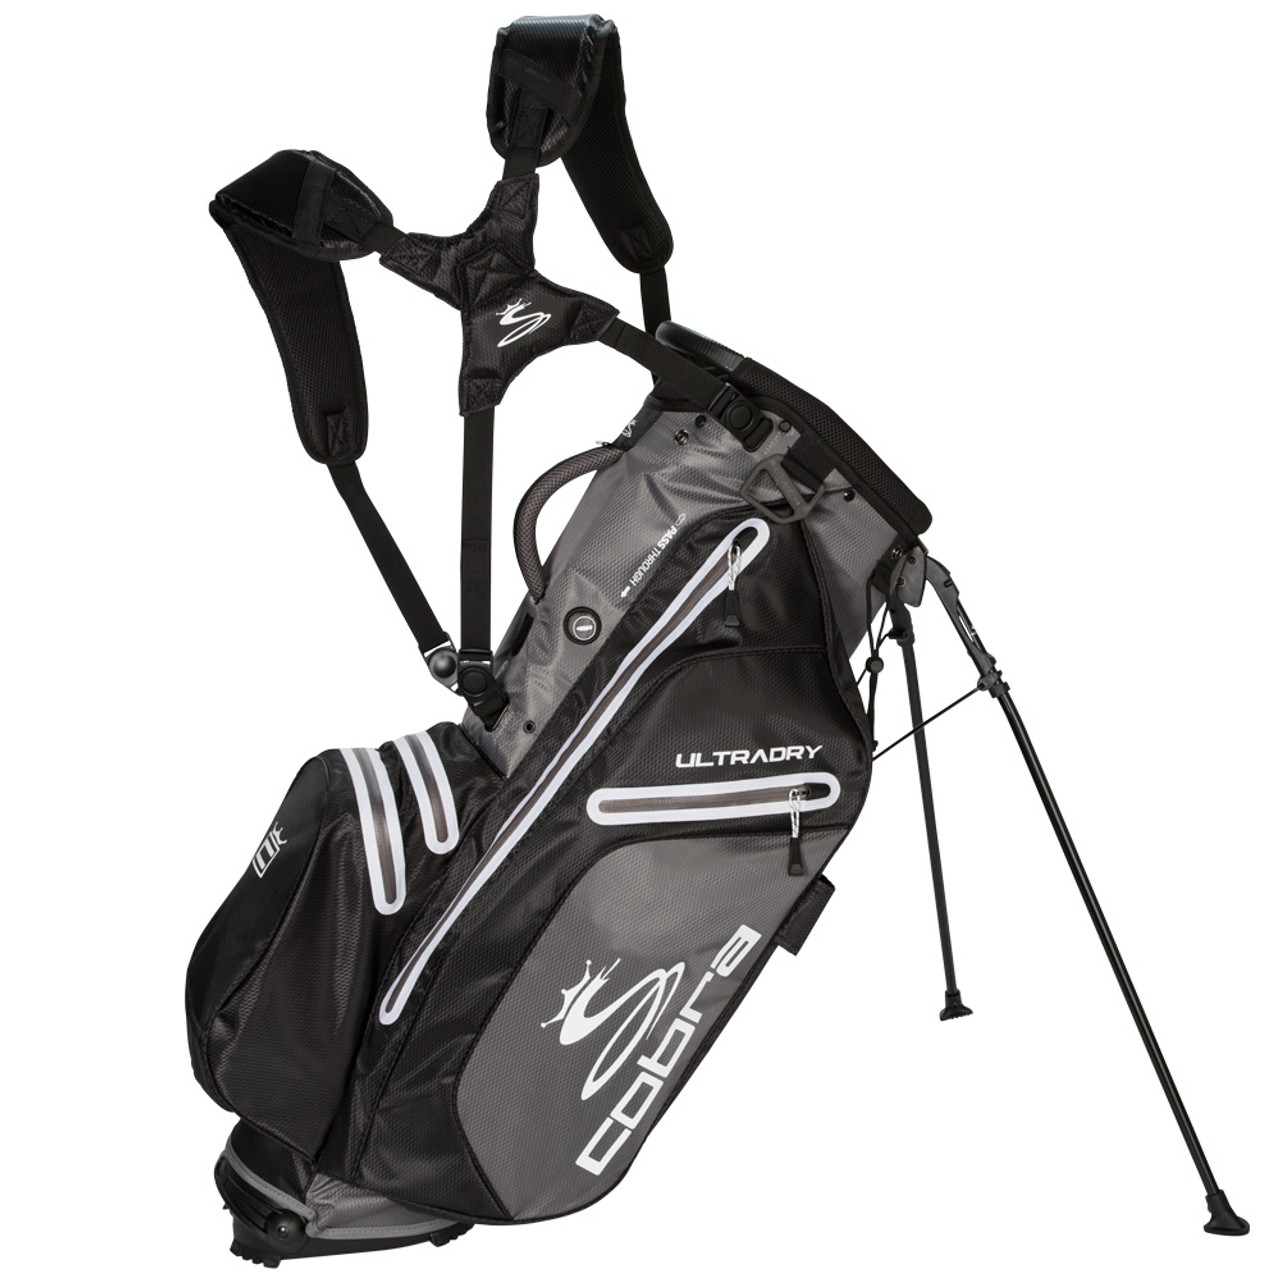 Cobra UltraDry Stand Bag - Black